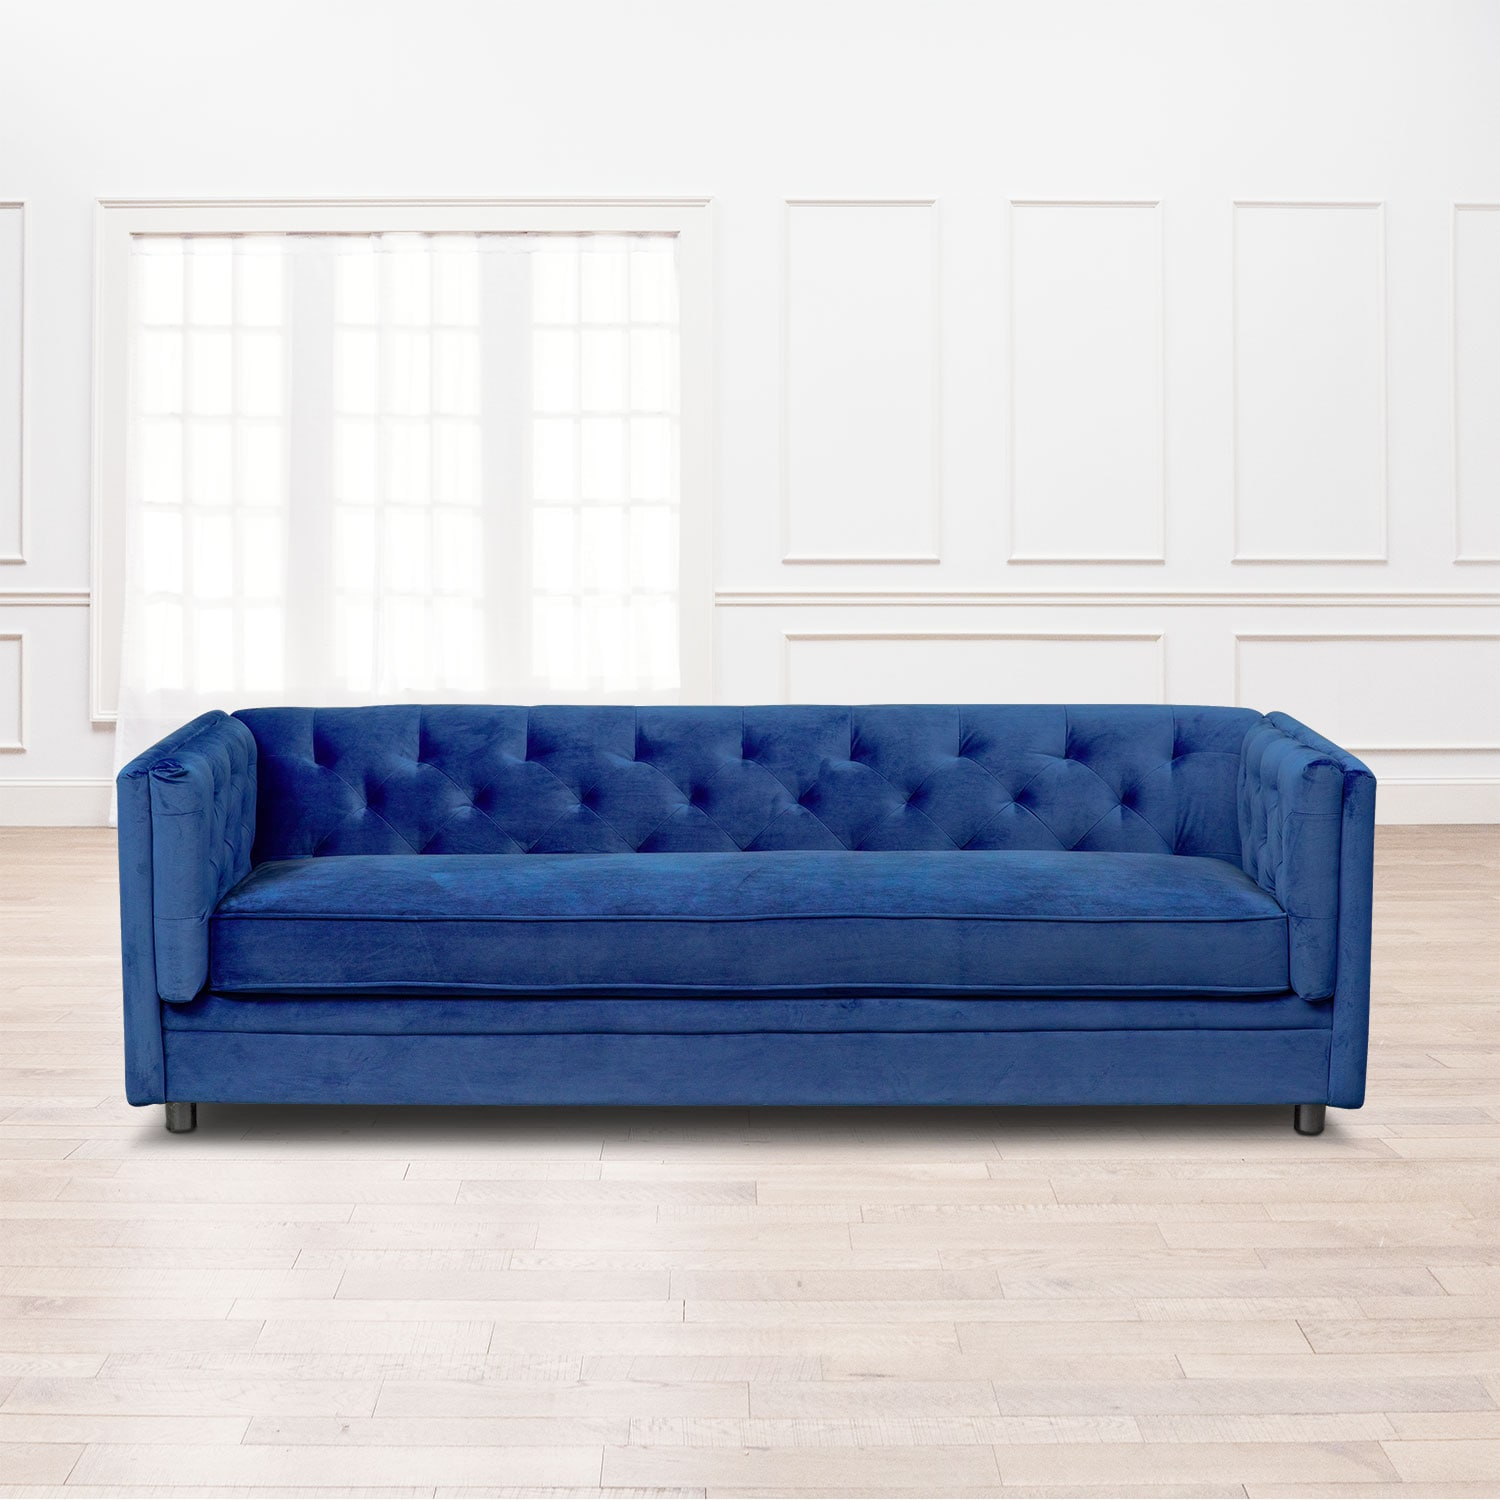 fd hover zoom furniture chair main gg fabric image flash to allgold navy banquet blue